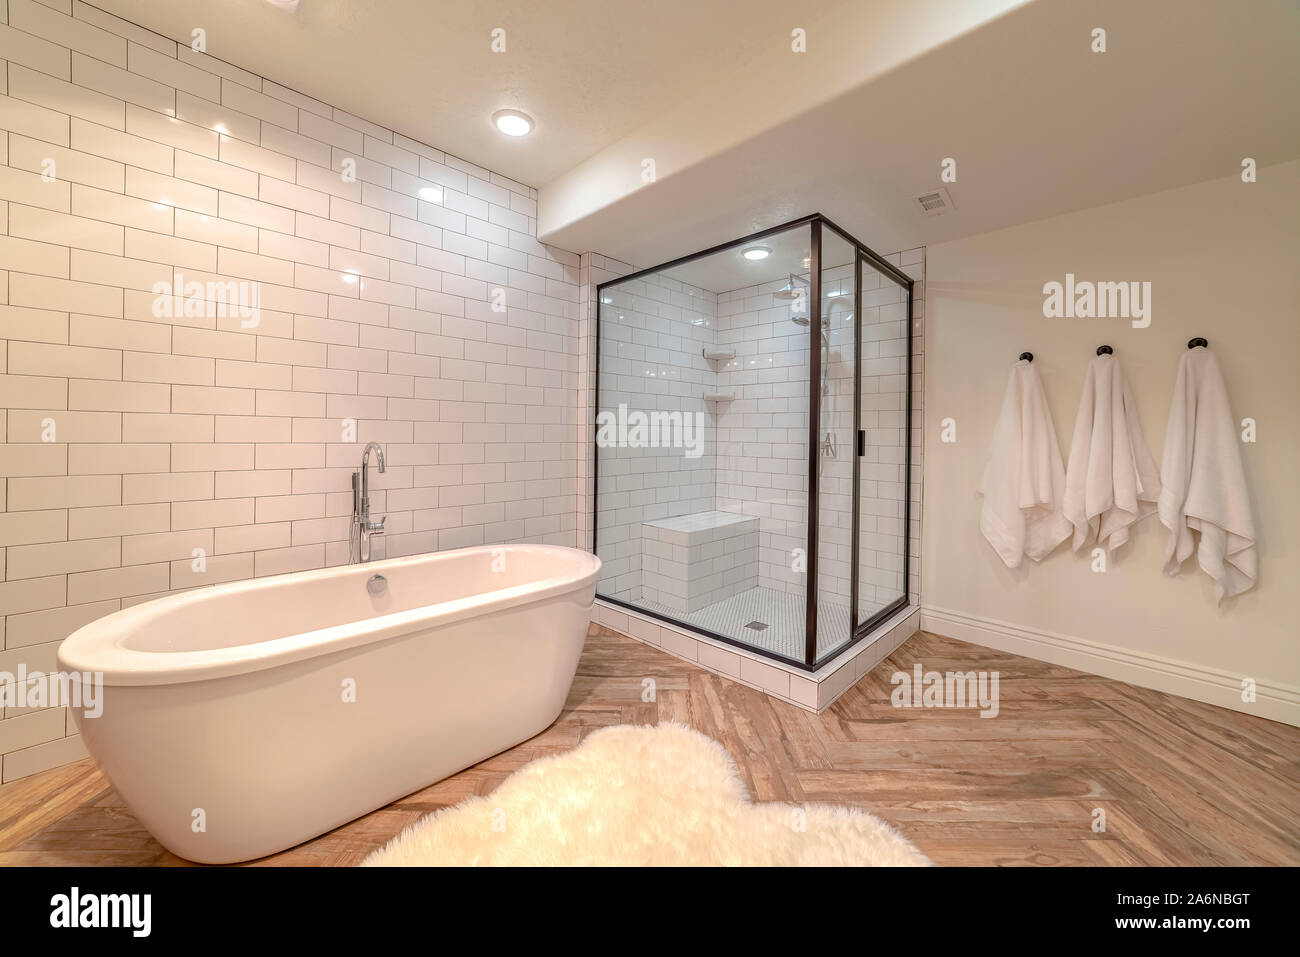 Picture of: Contemporary Bathroom With Free Standing Bath Tub Stock Photo Alamy